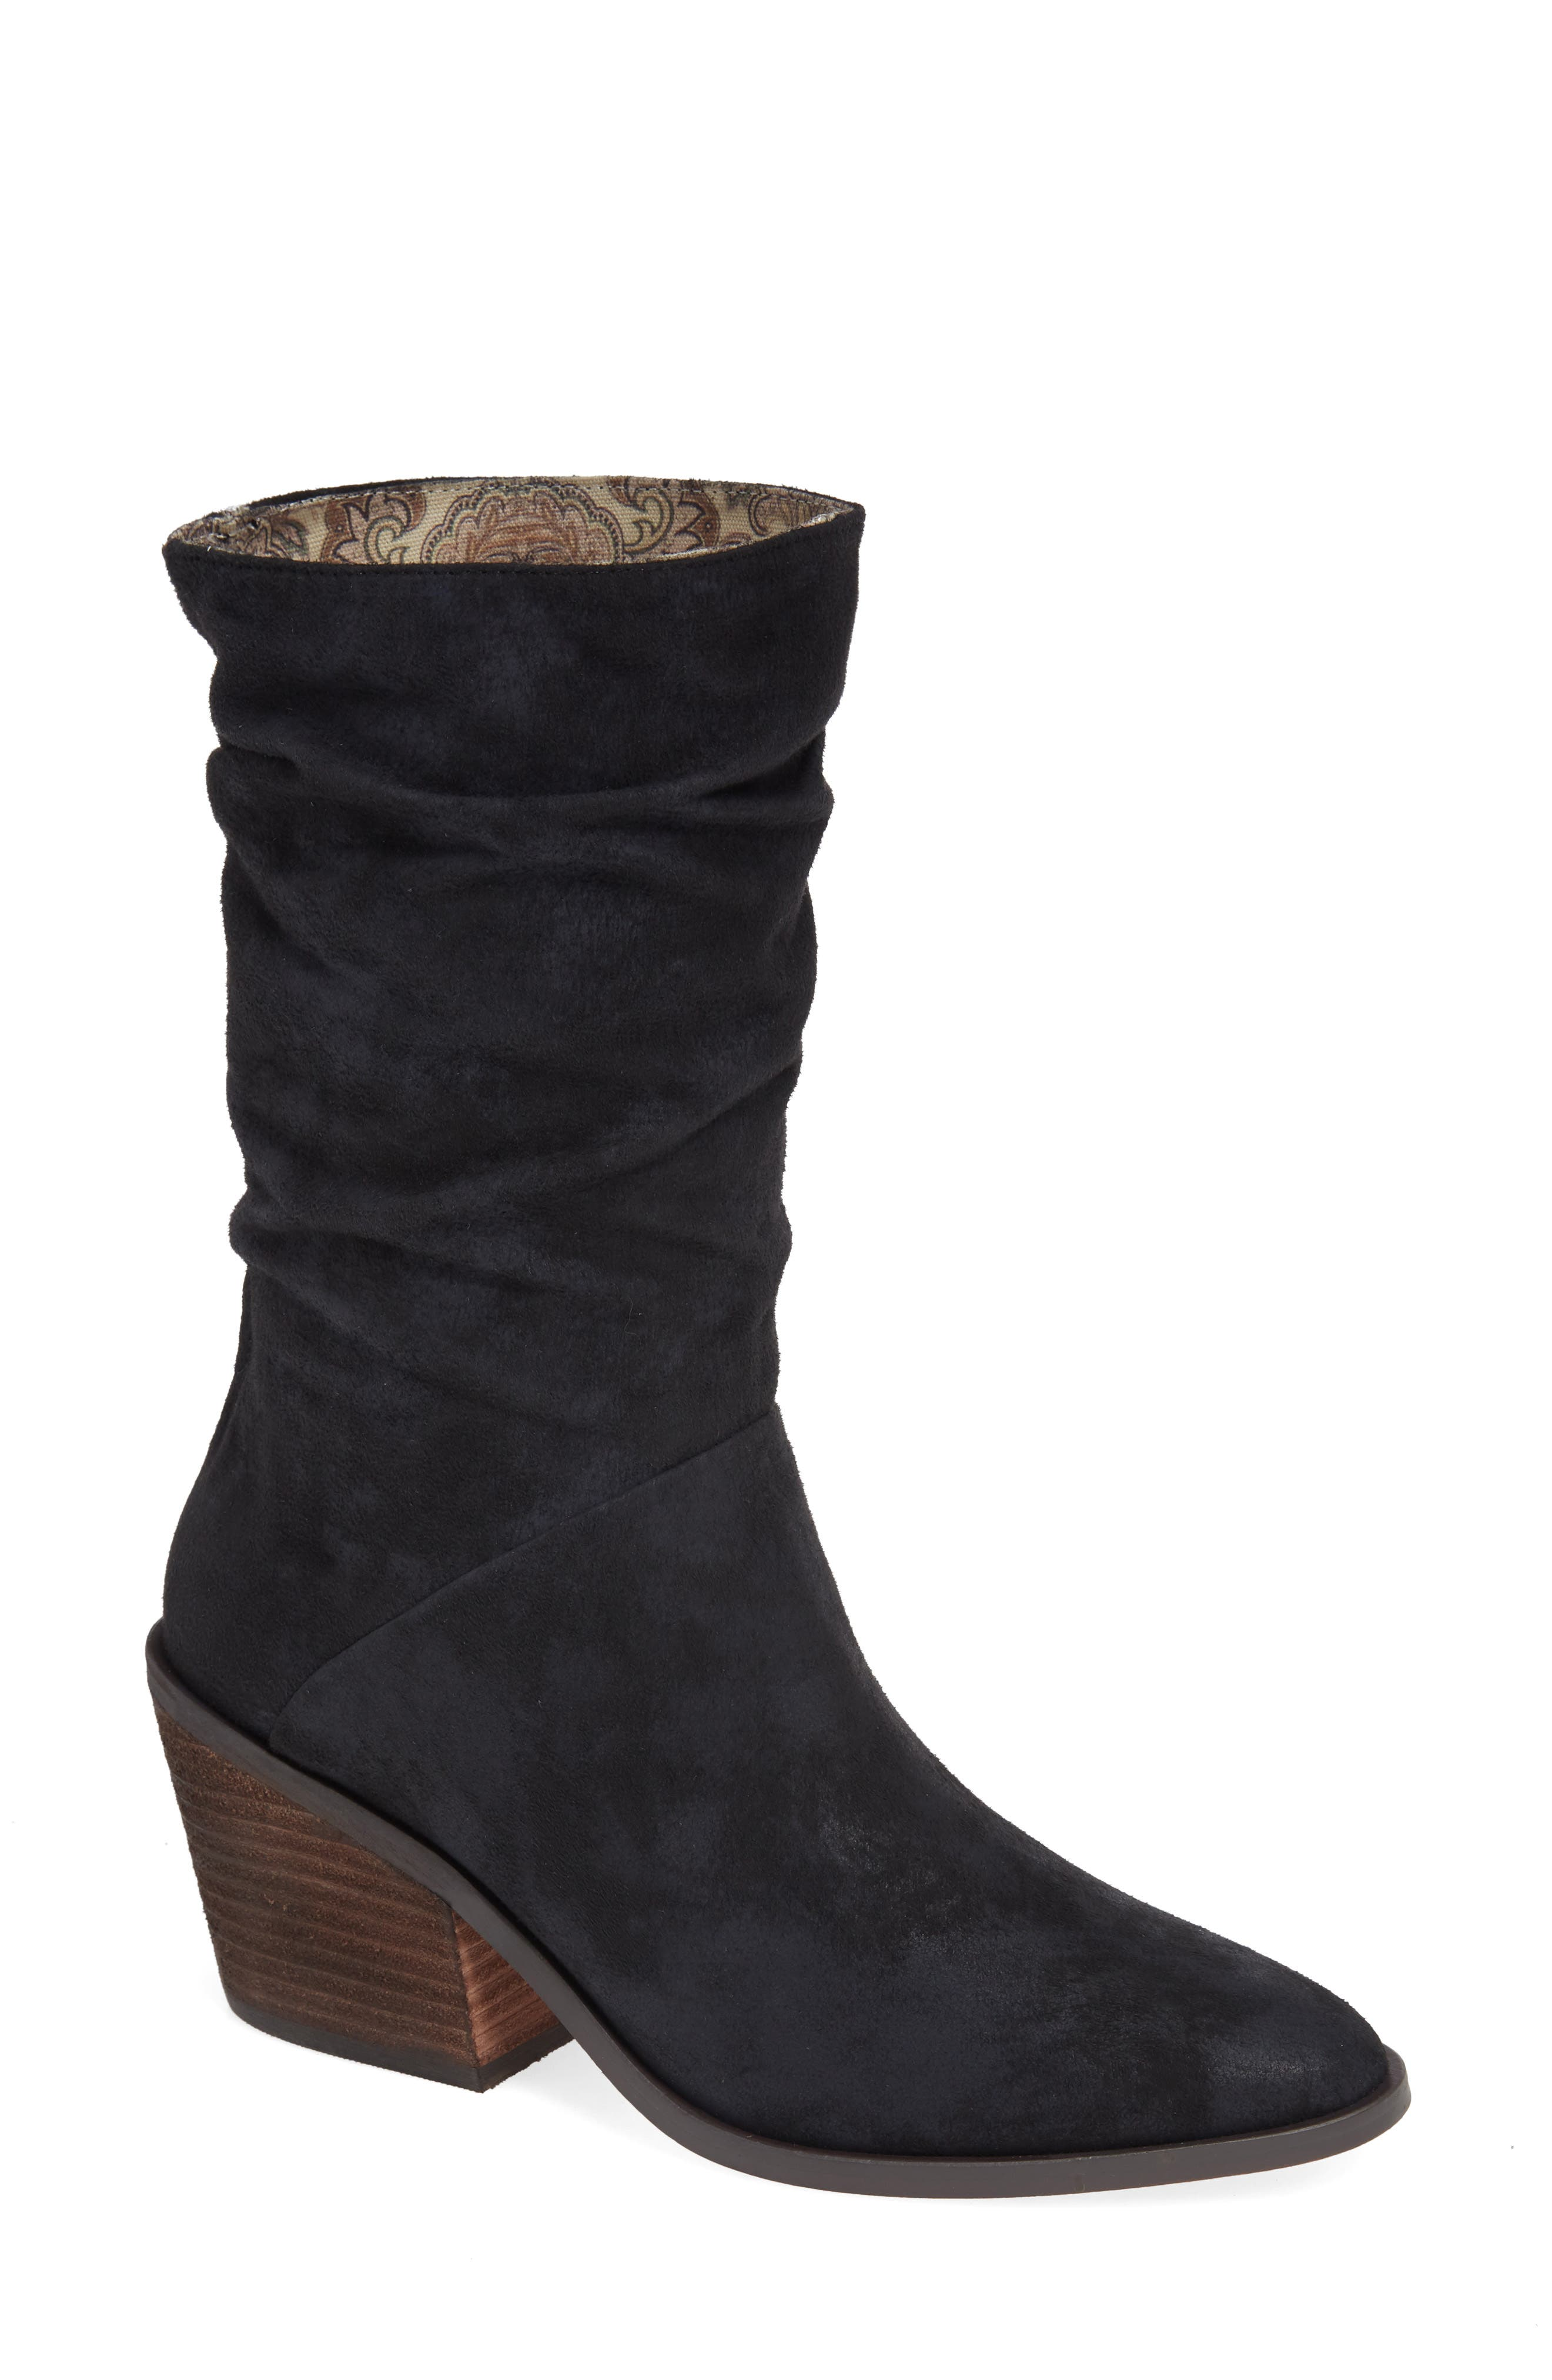 BAND OF GYPSIES Crash Bootie in Black Burnished Micro